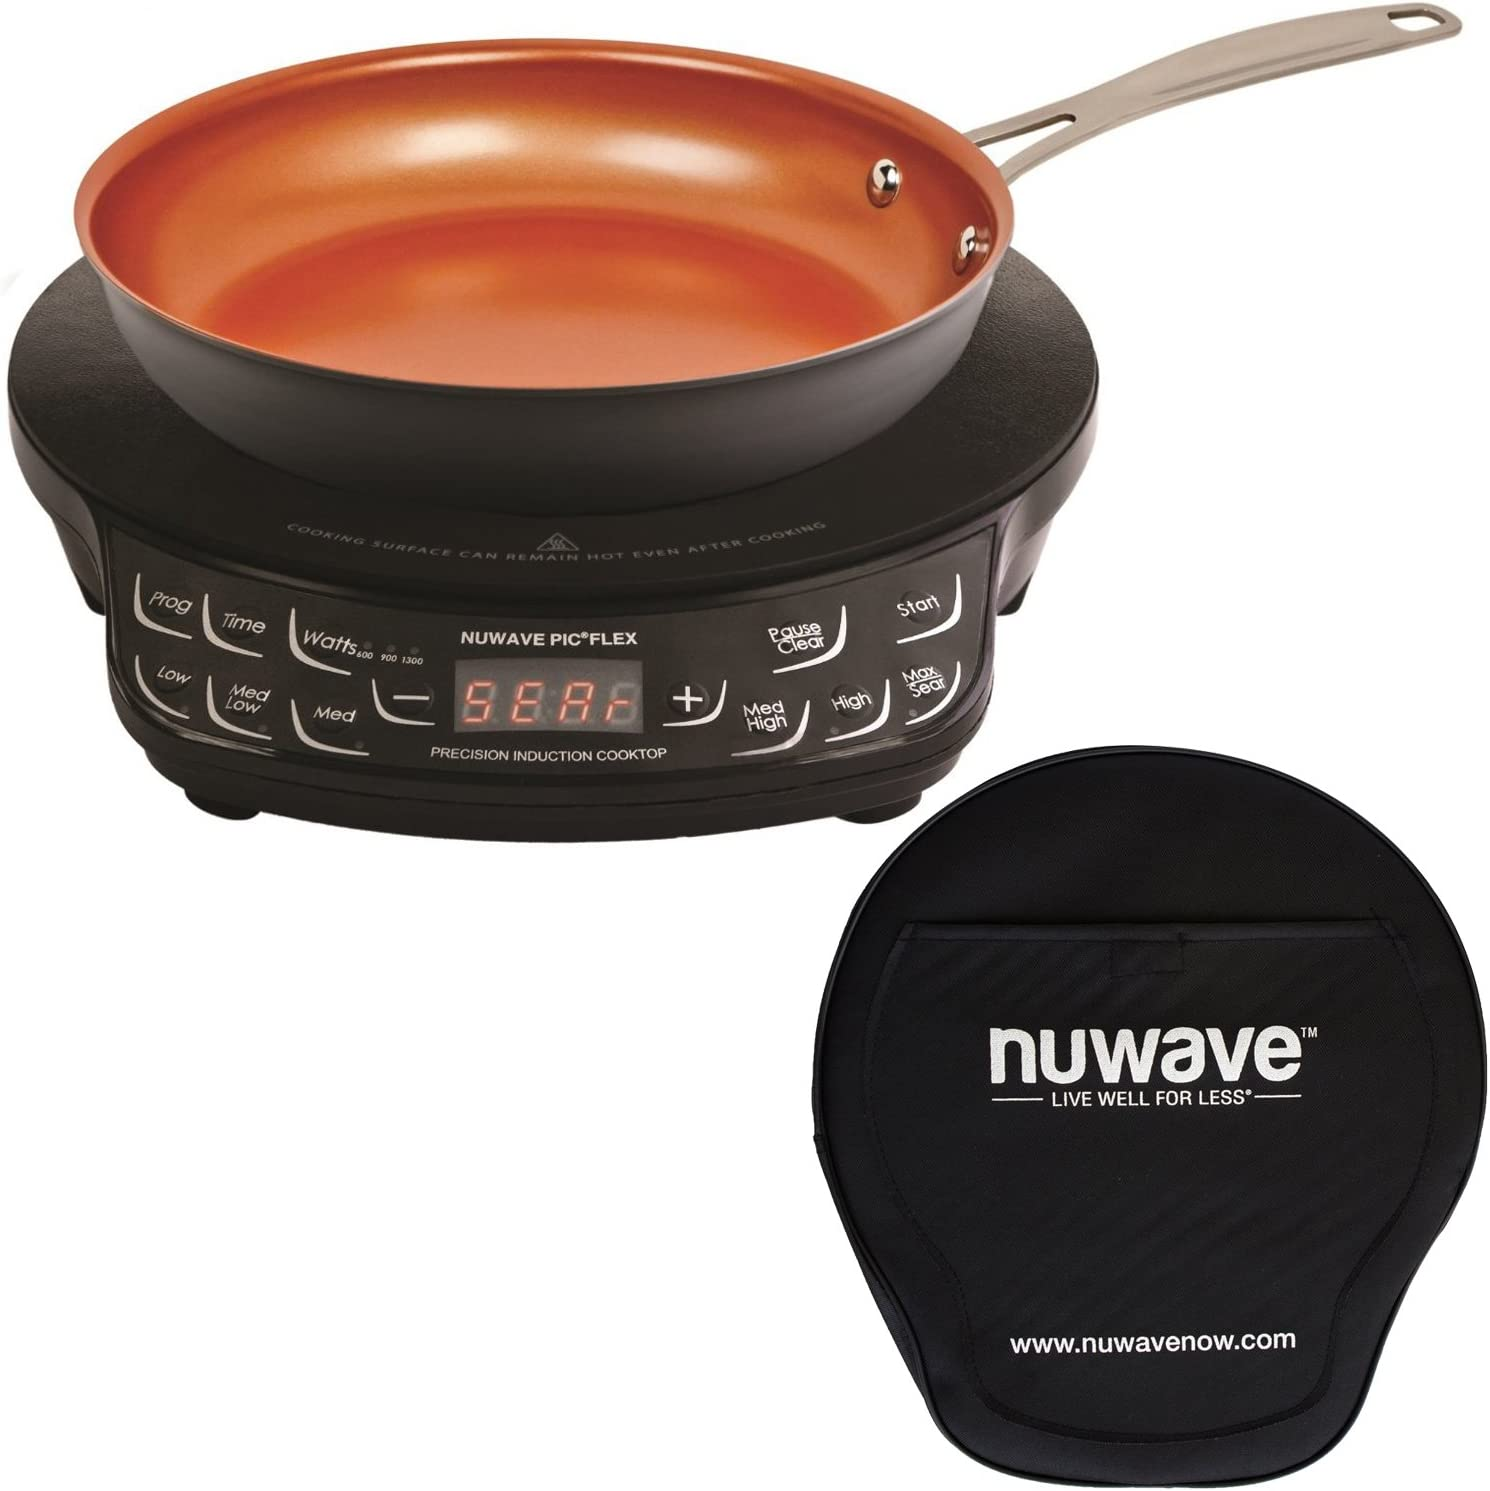 NuWave Compact Induction Cooktop w/9' Hard Anodized Fry Pan & Storage Case